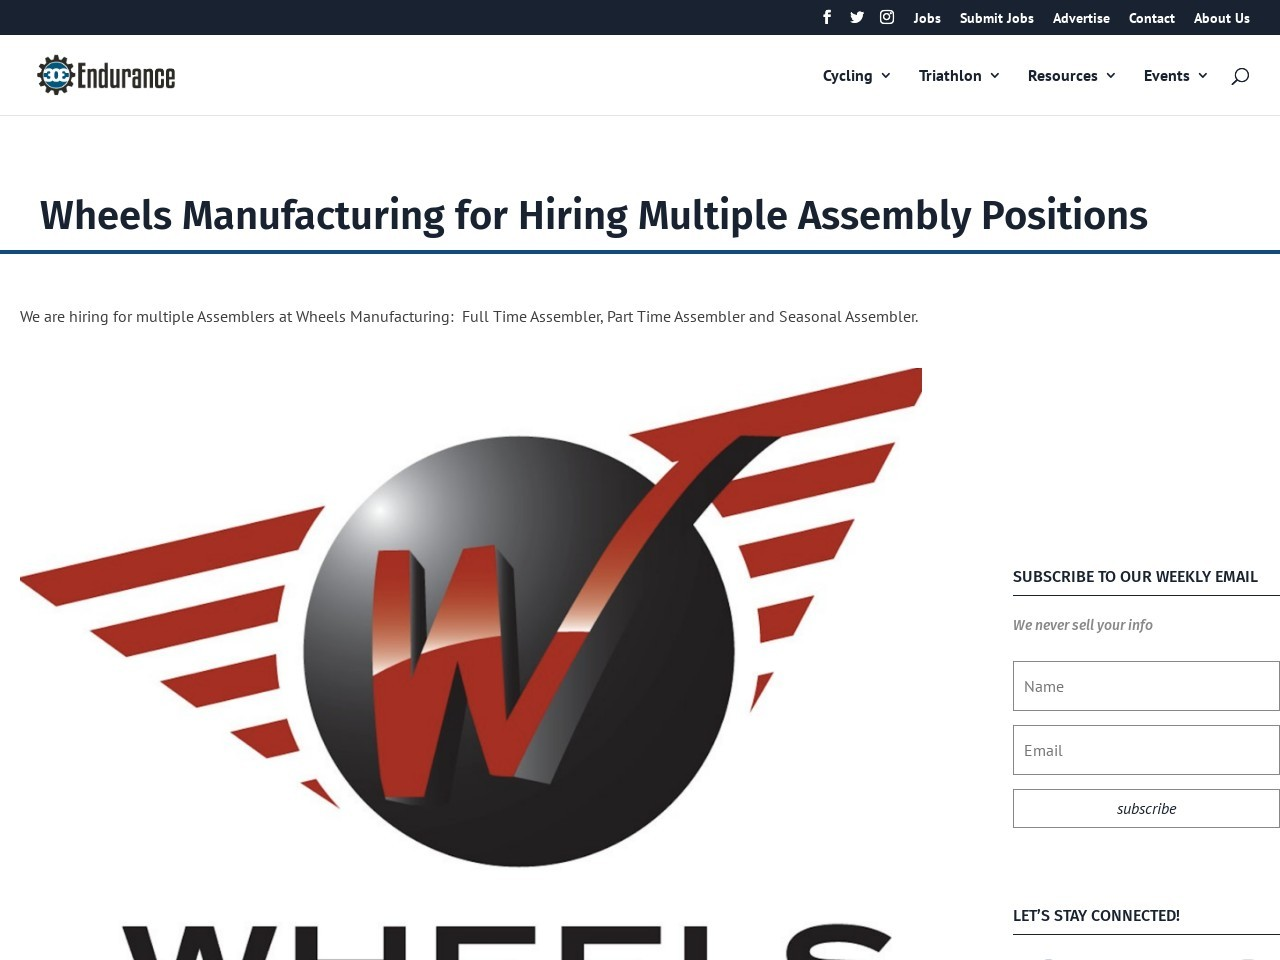 Wheels Manufacturing for Hiring Multiple Assembly Positions